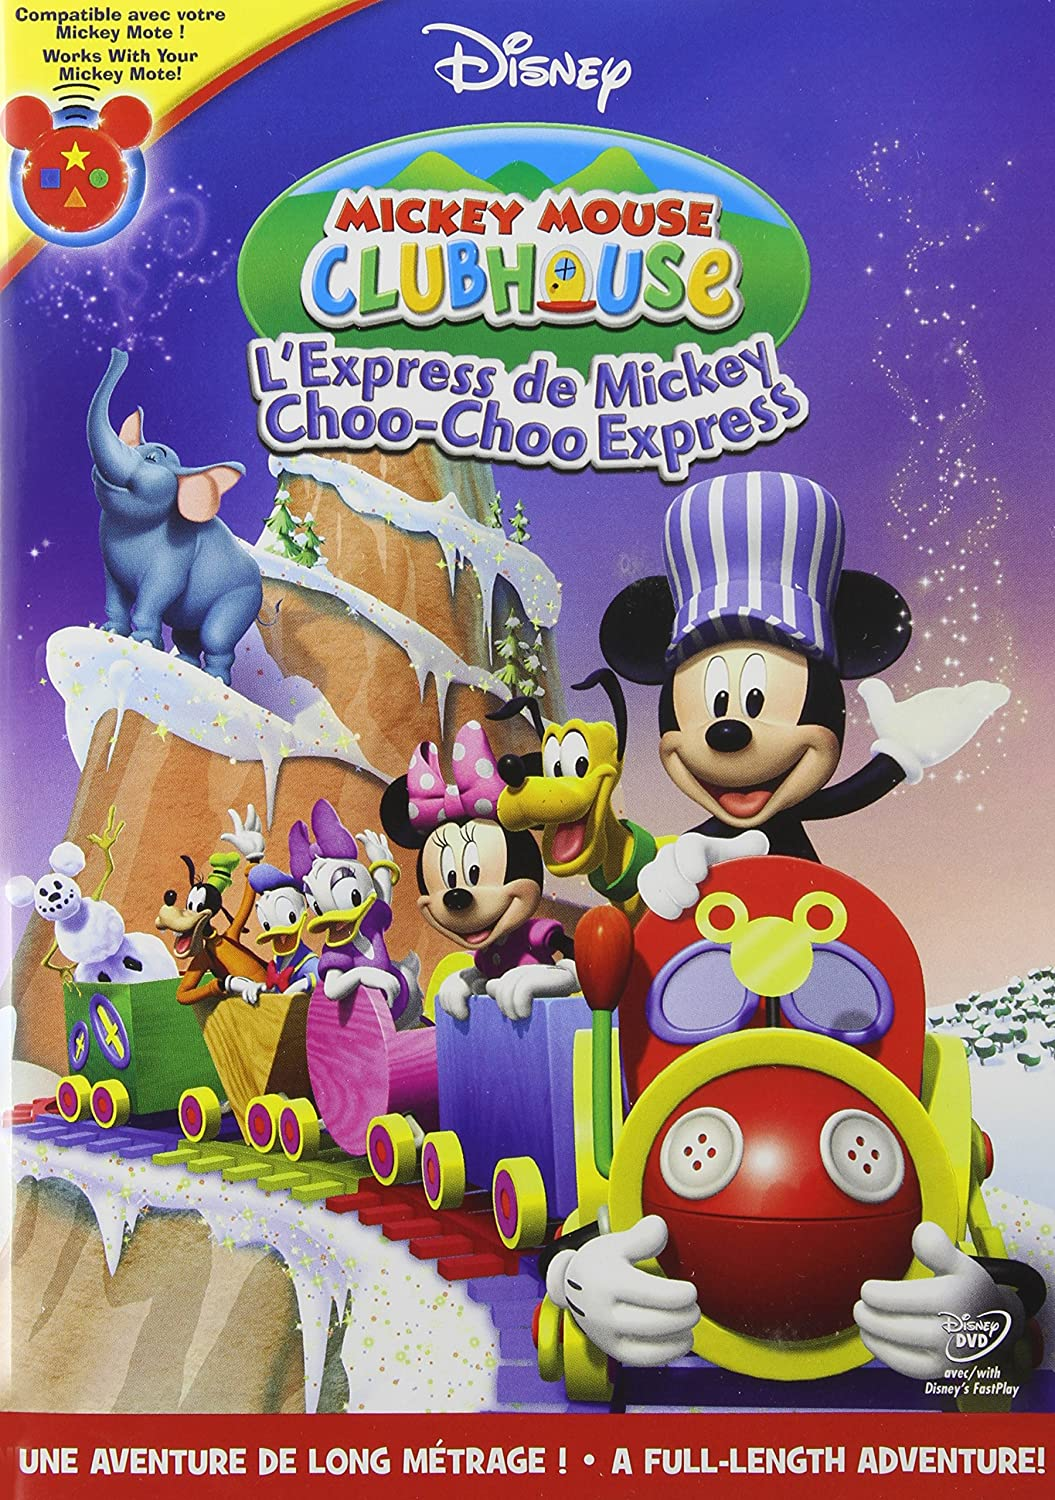 Disney Mickey Mouse Clubhouse Choo Express Movies Votree Tv